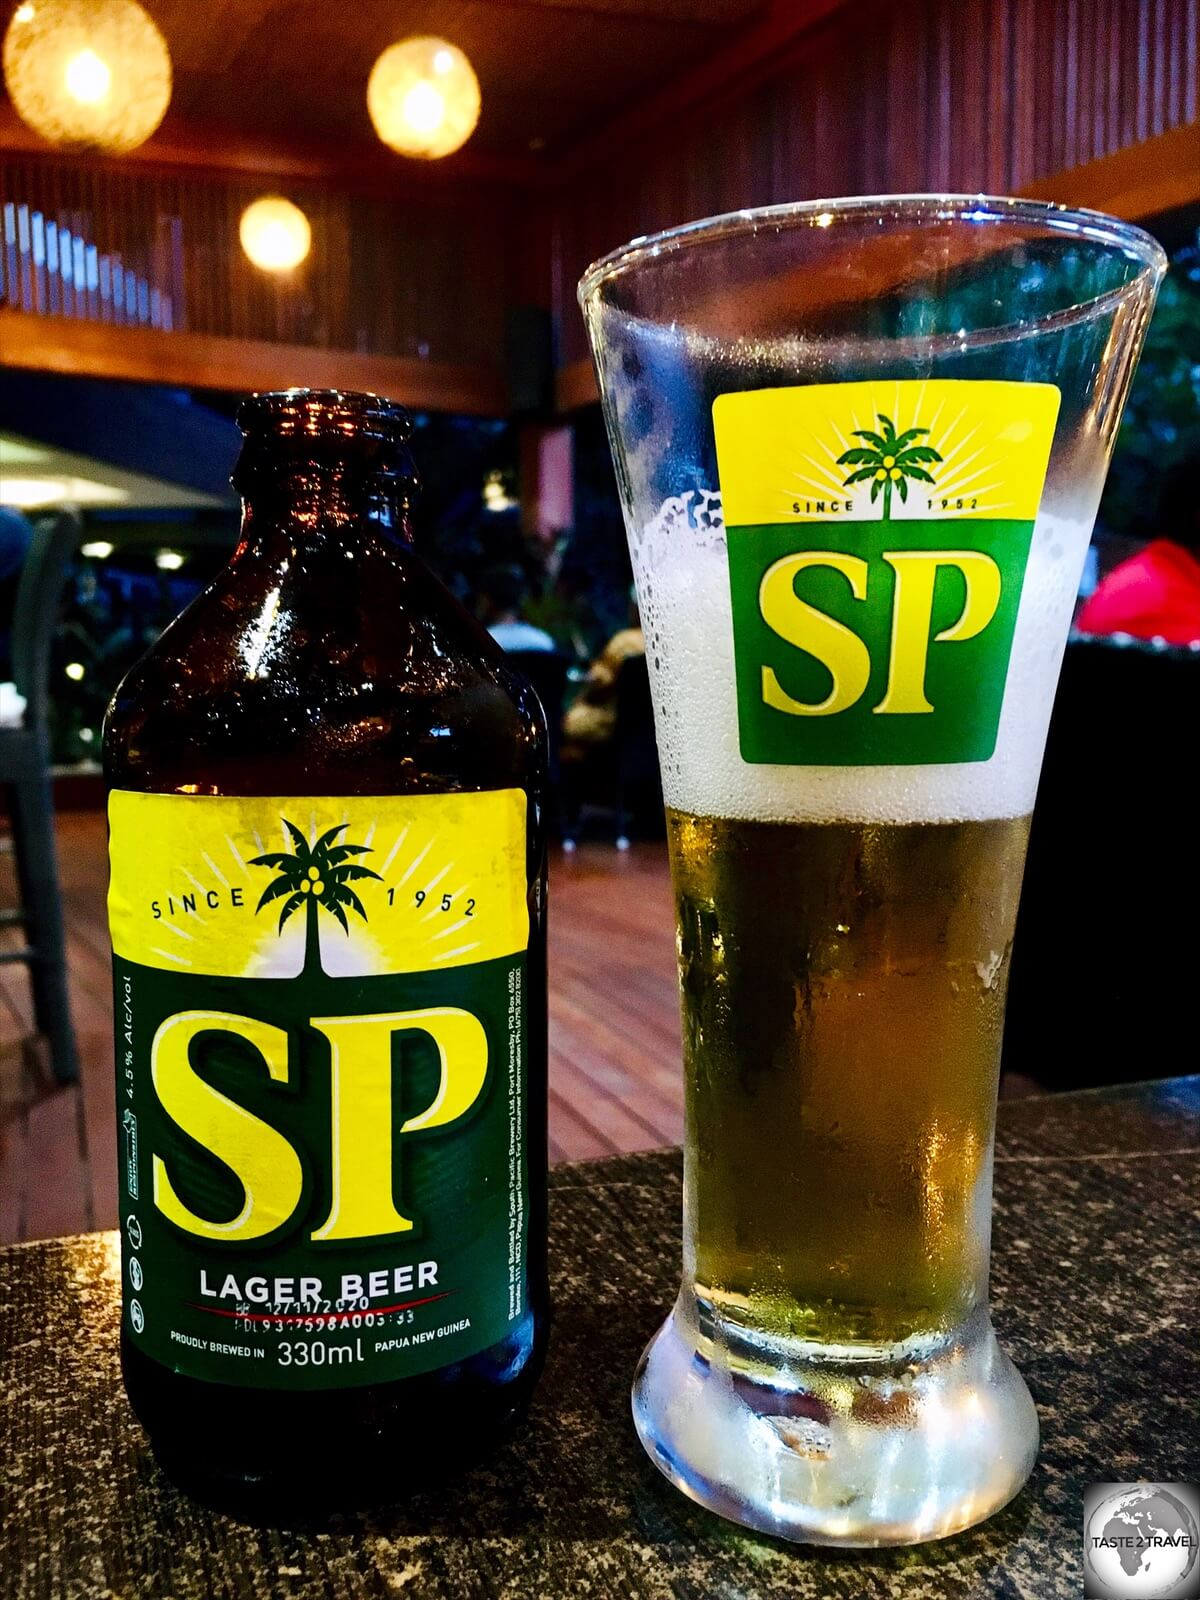 The most popular beer in PNG is brewed by the South Pacific (SP) brewery.